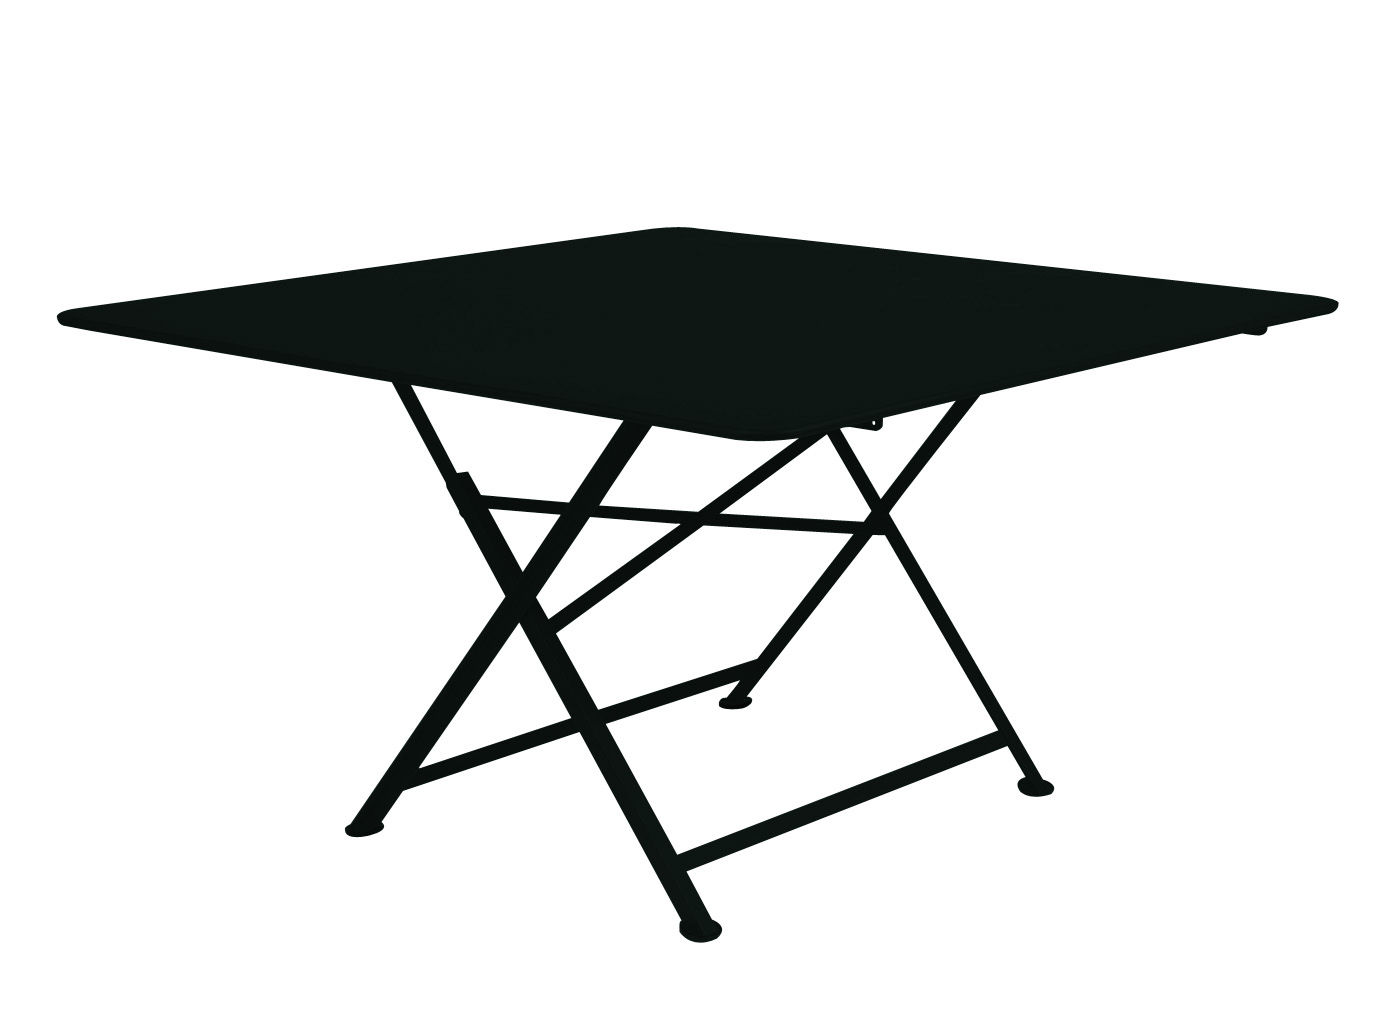 Outdoor - Garden Tables - Cargo Foldable table - 128 x 128 cm by Fermob - Liquorice - Lacquered steel